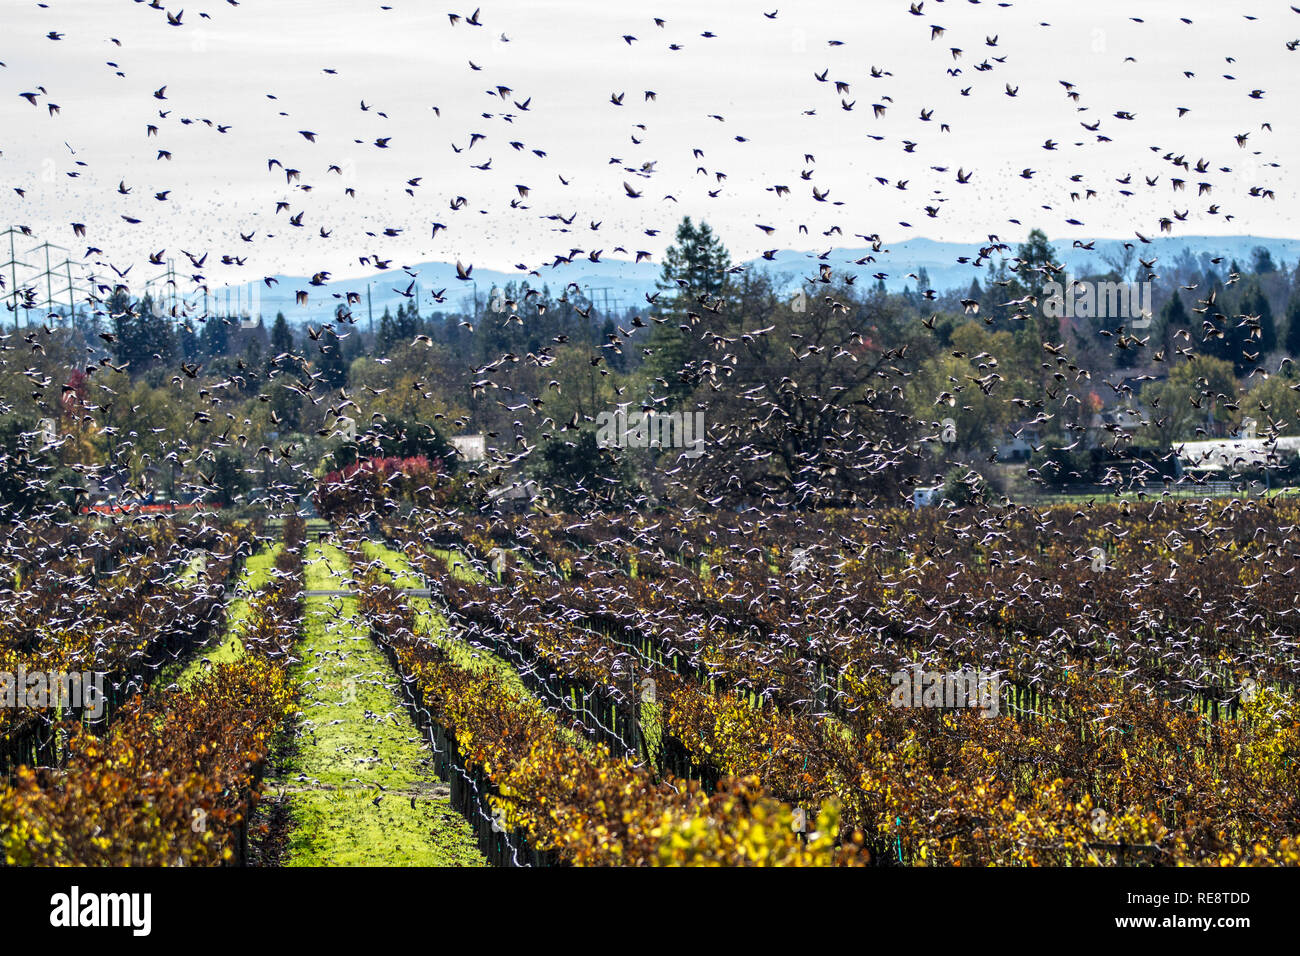 Swarm II - Vaux's swifts fly in a frenzy over a vineyard. Sonoma County, California, USA Stock Photo